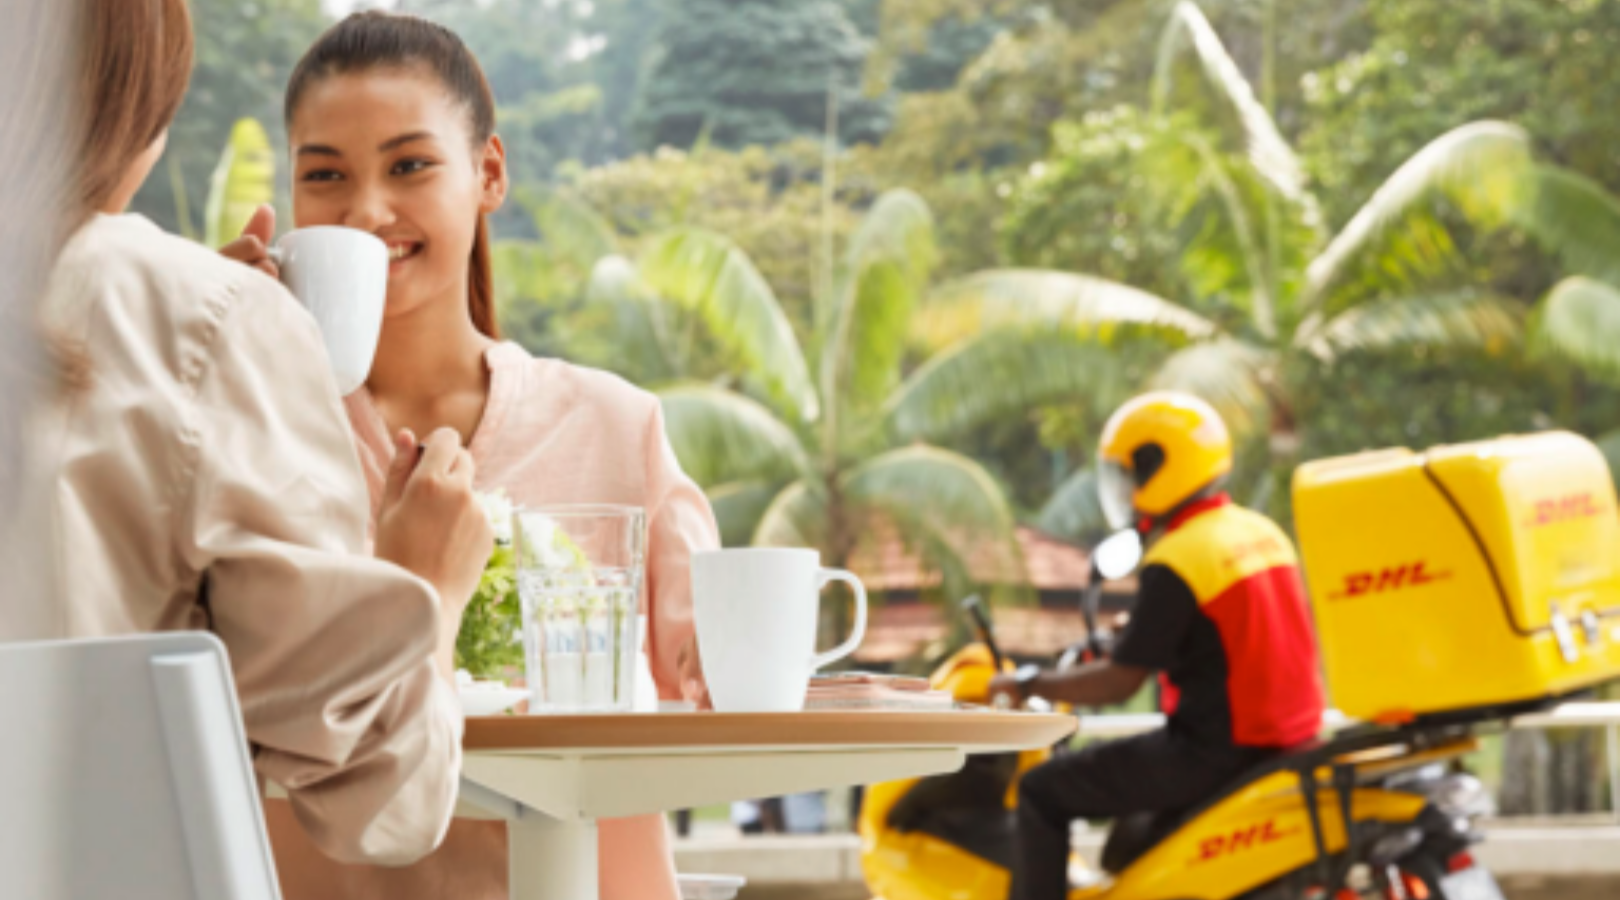 DHL eCommerce vs. DHL Express: Which is Better for Online Merchants?